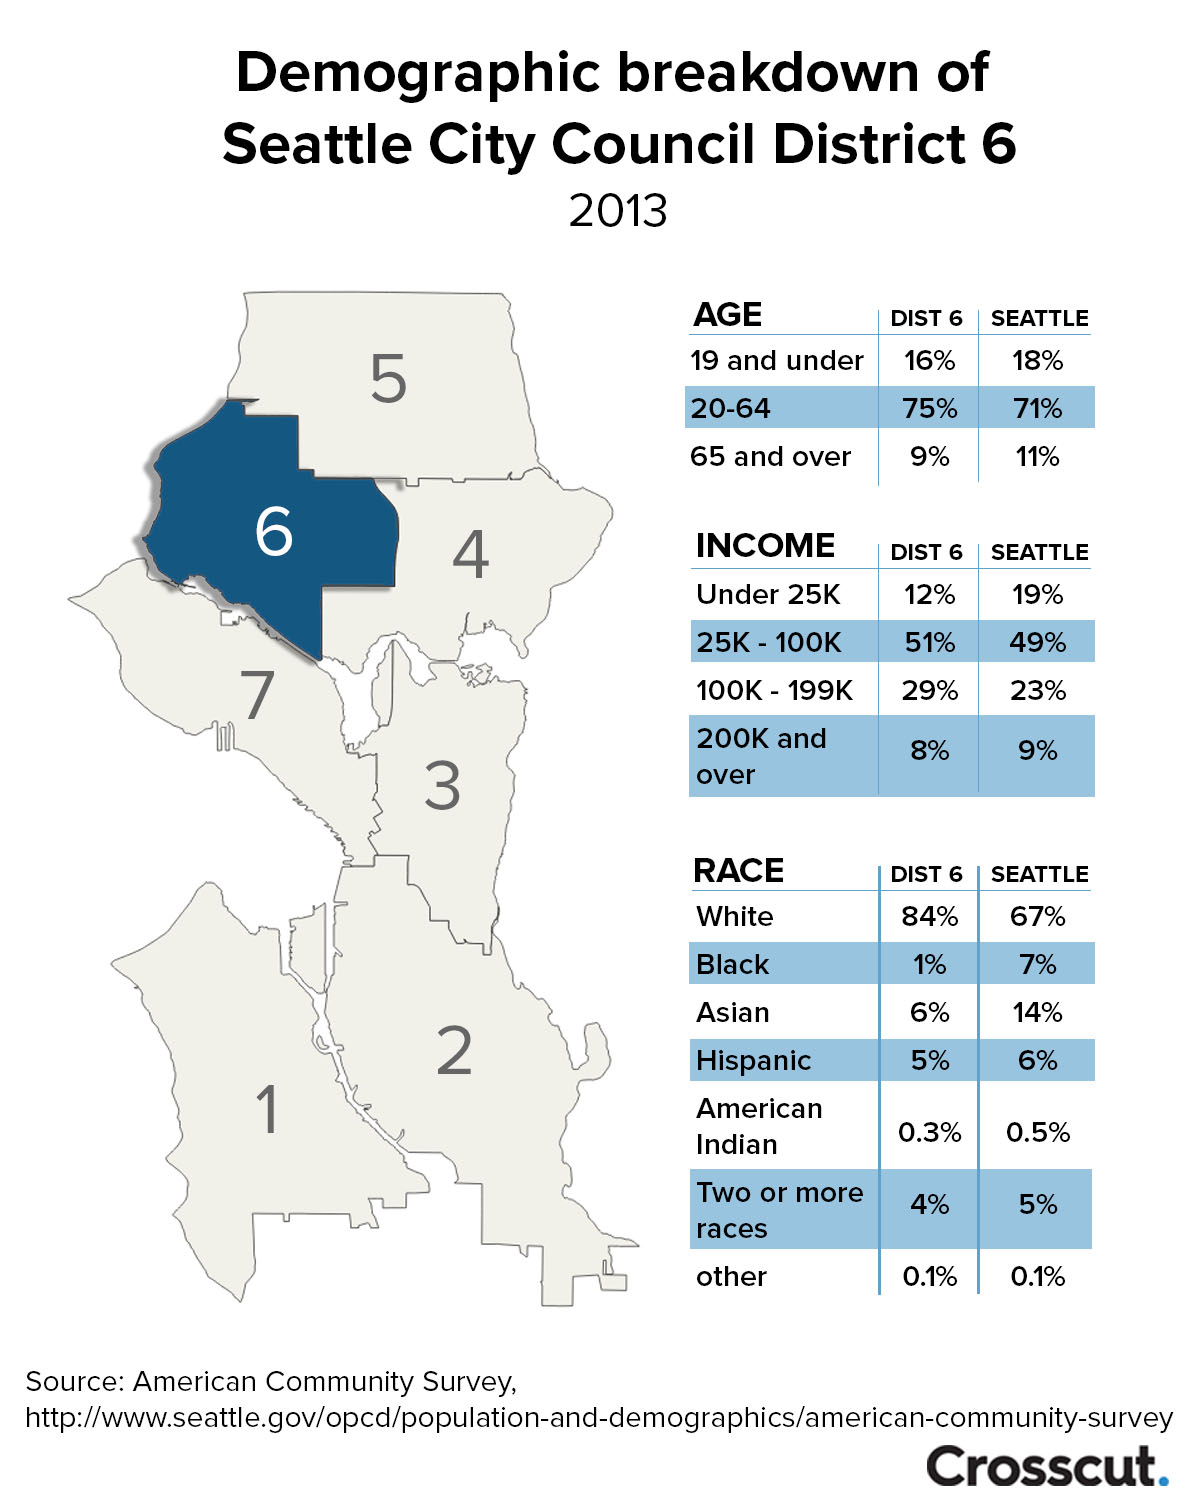 Seattle city council district 6 demographics